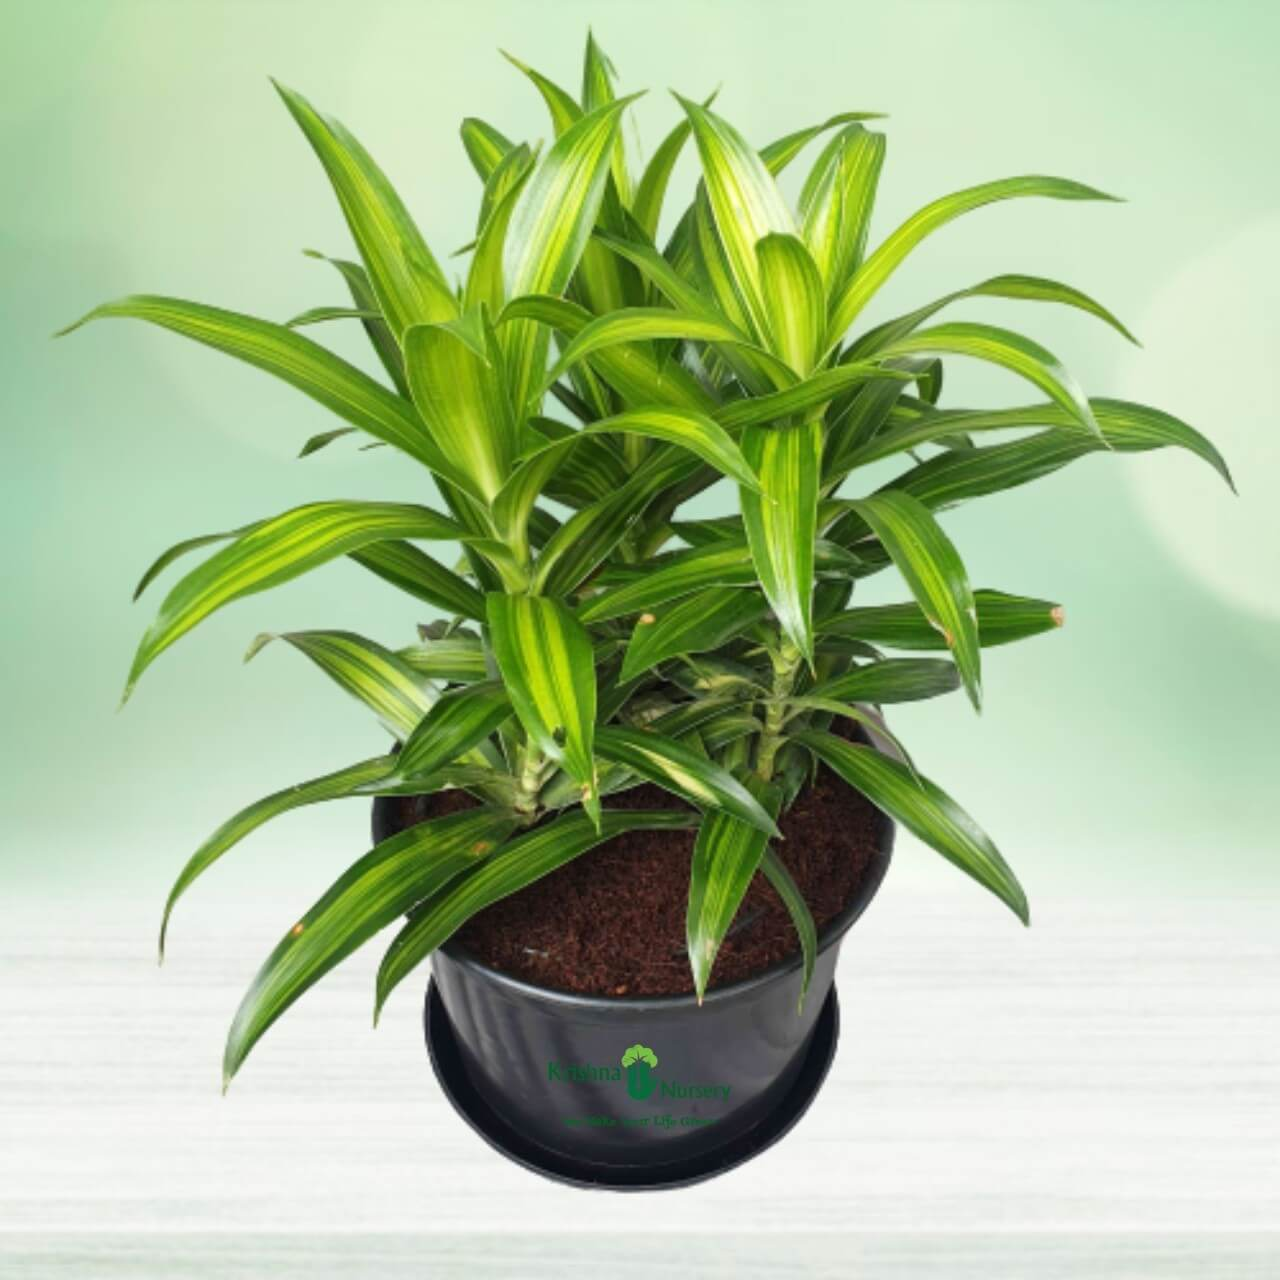 Green Song of India Plant - 8 Inch - Black Pot